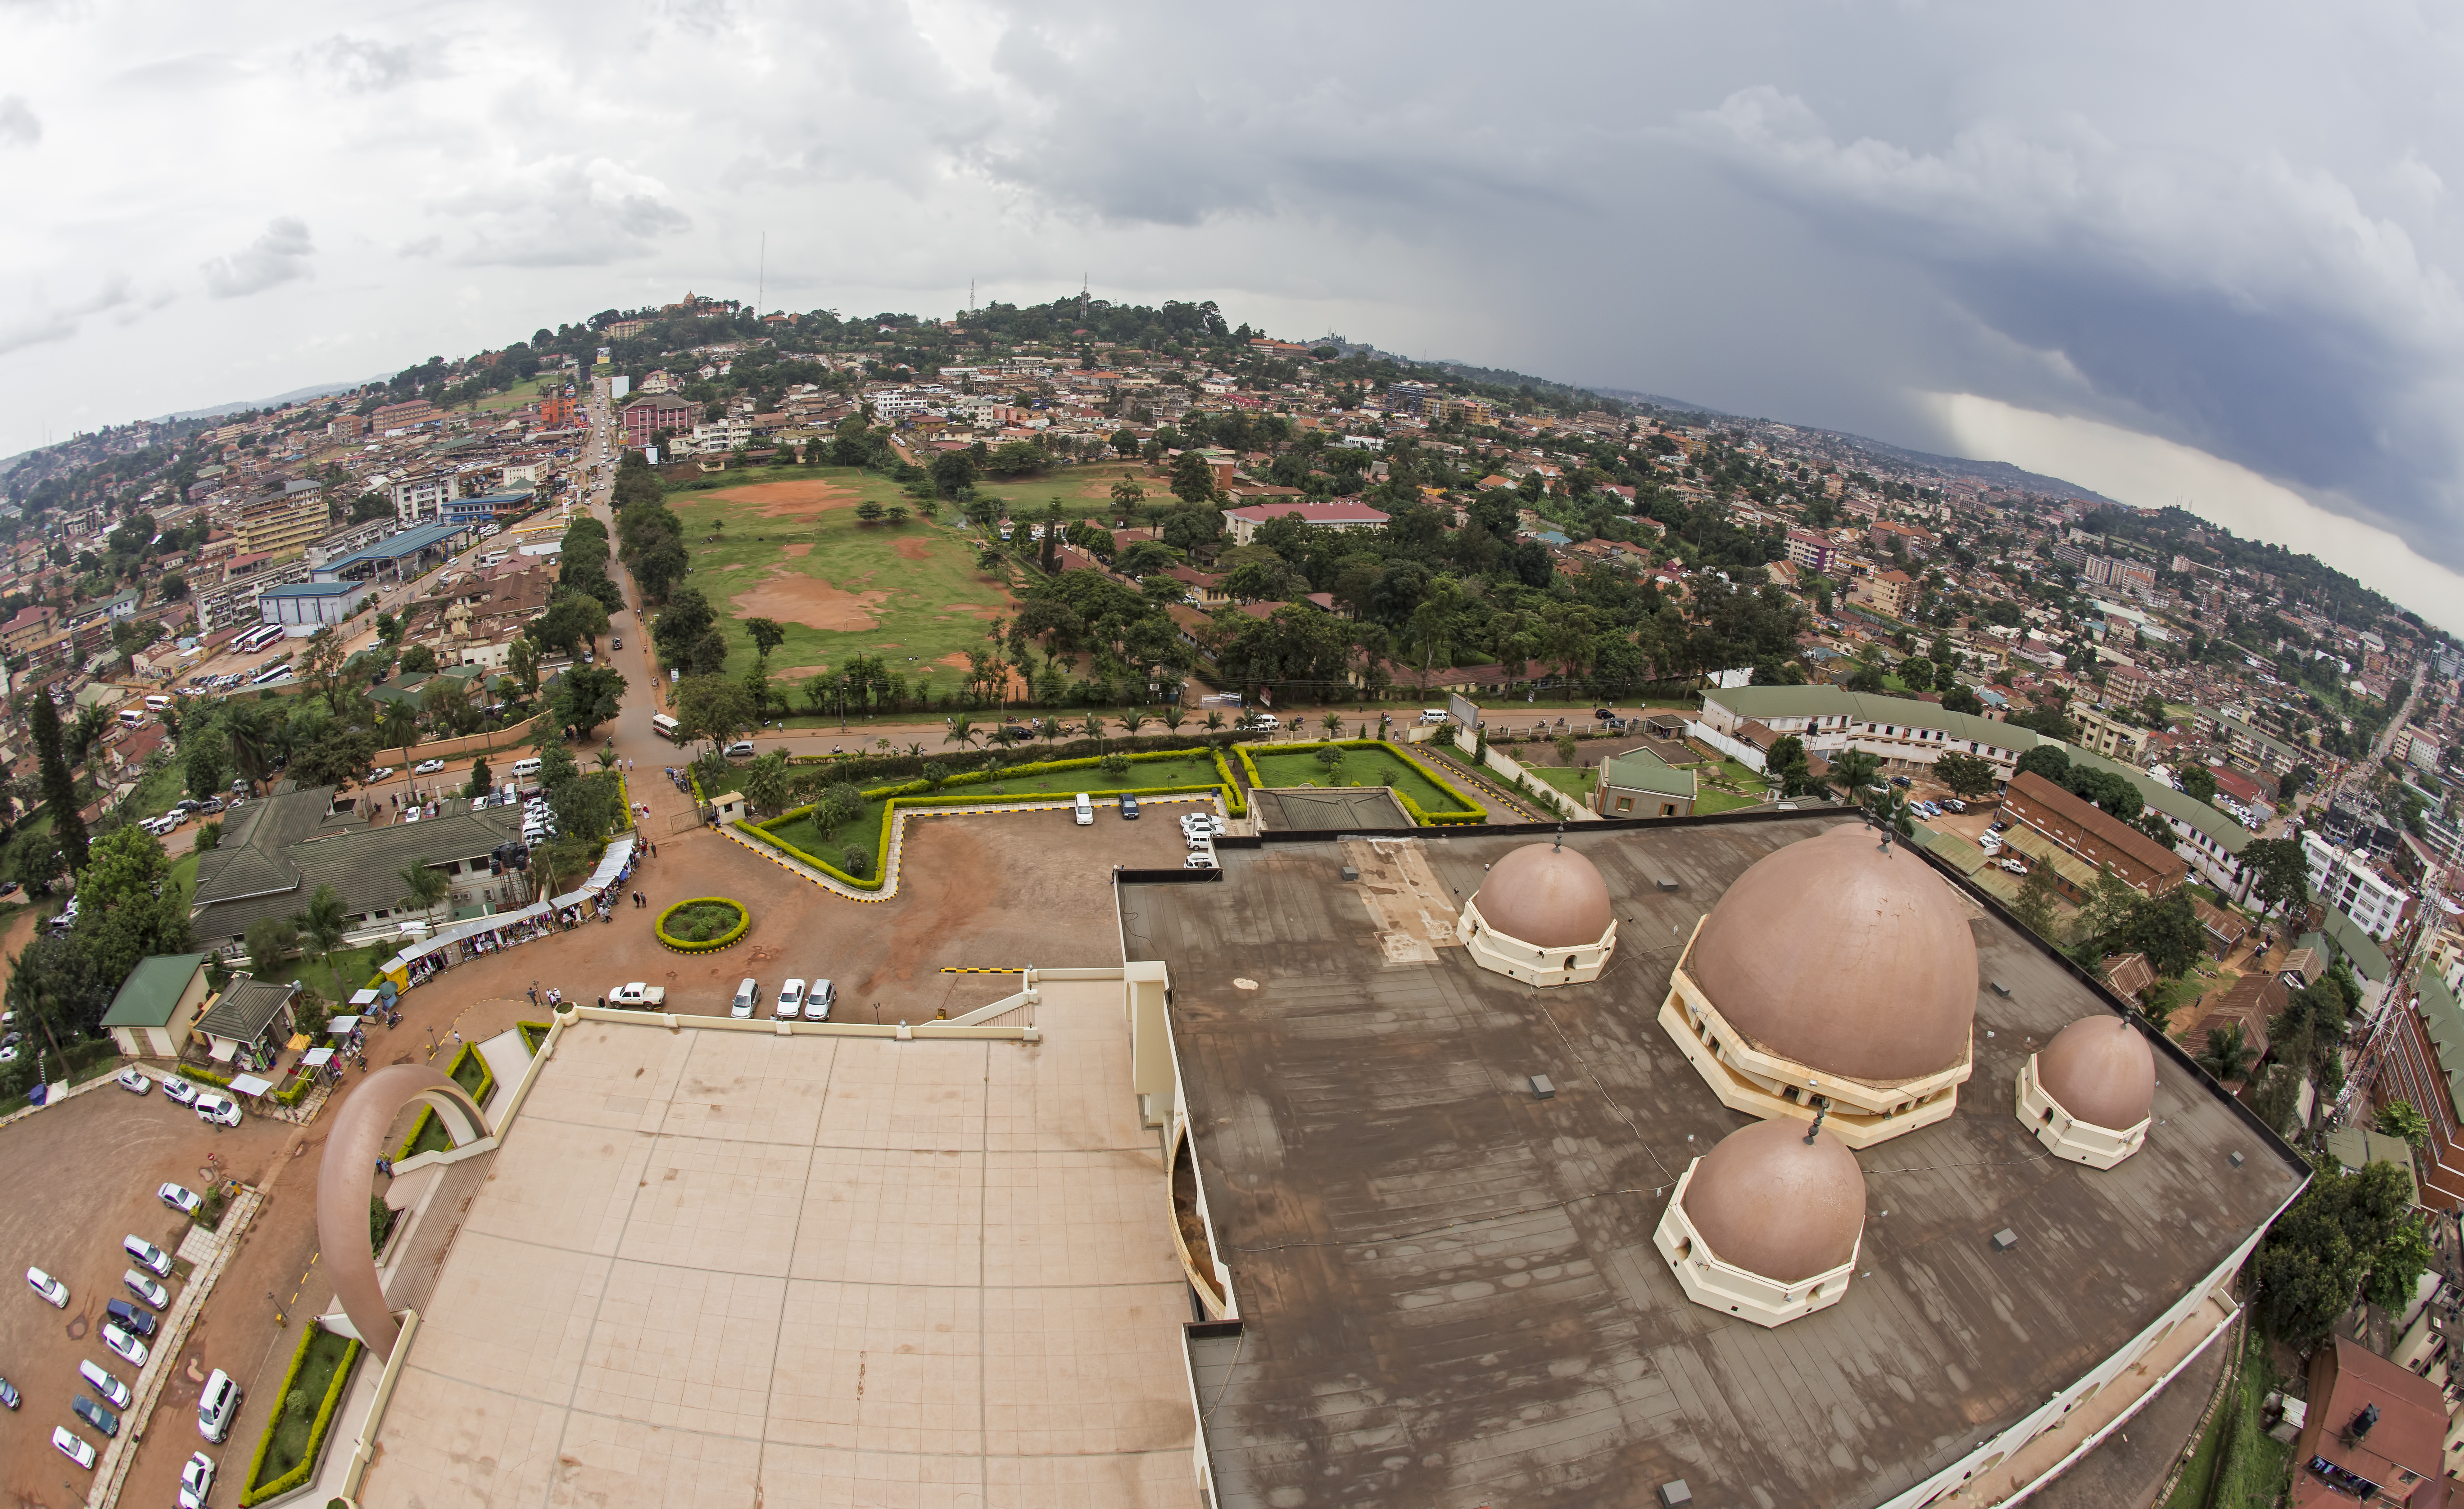 Fisheye view of Kampala city in Uganda